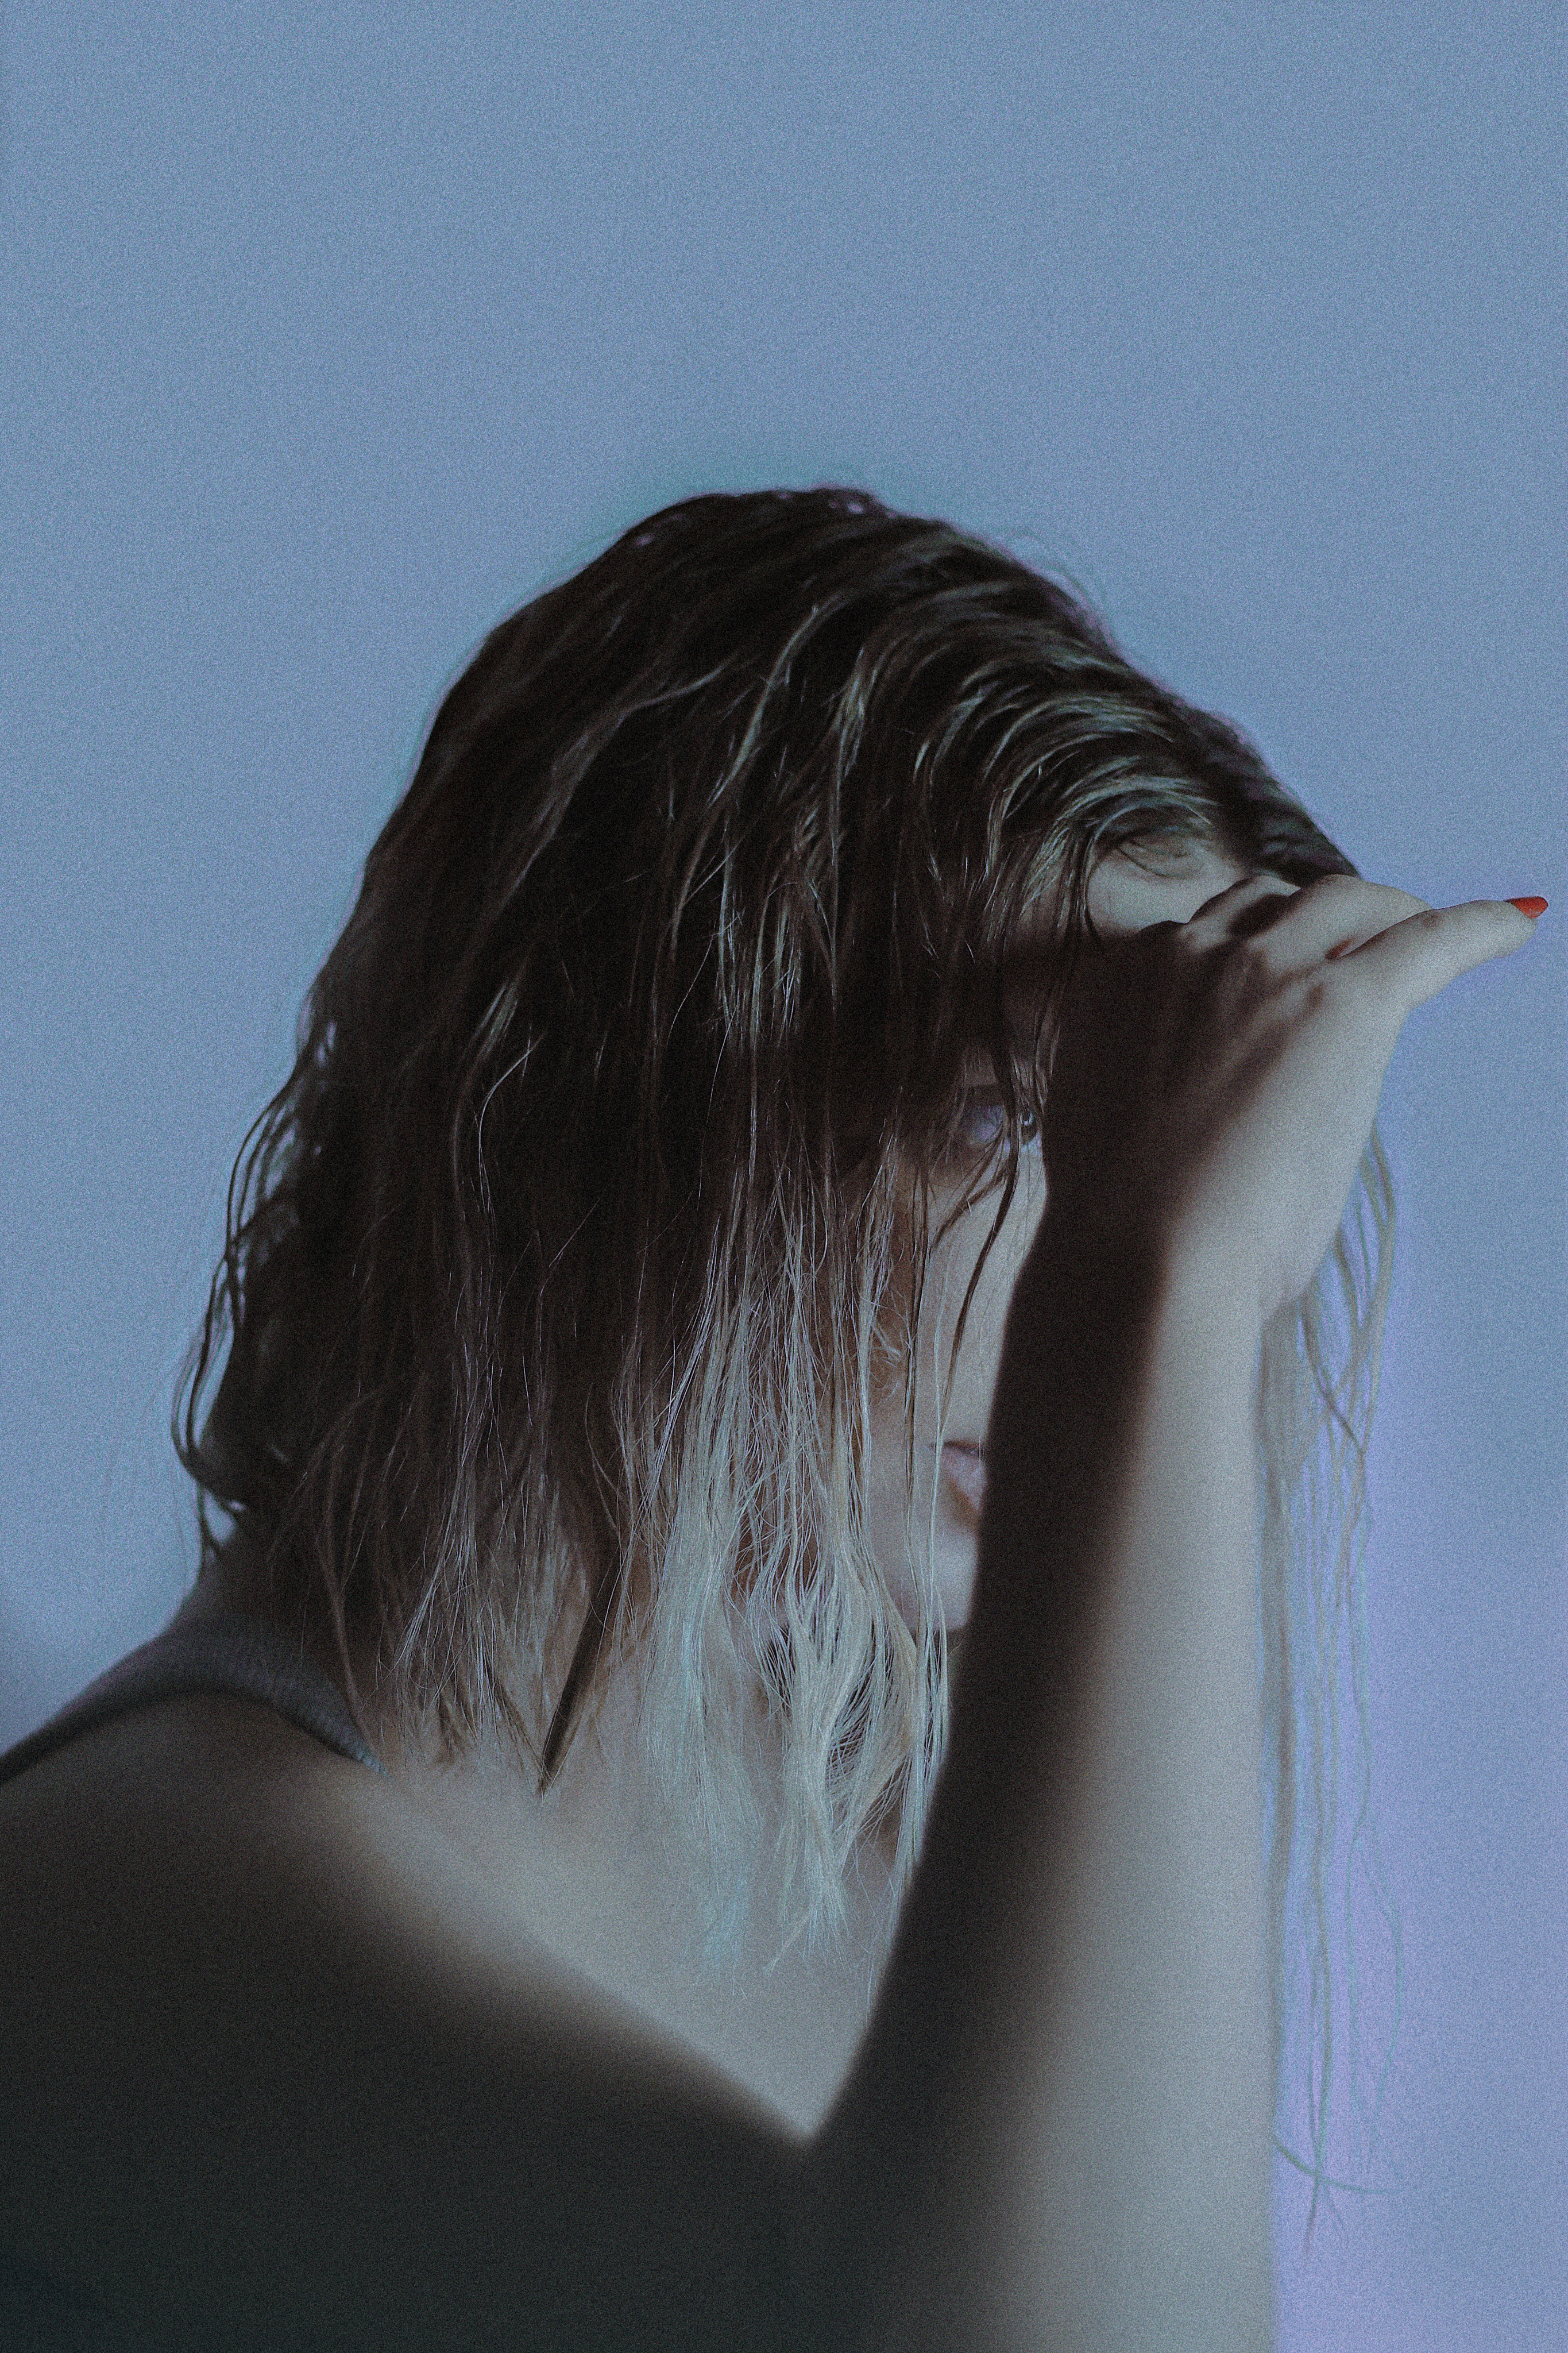 woman covering her face with her hair